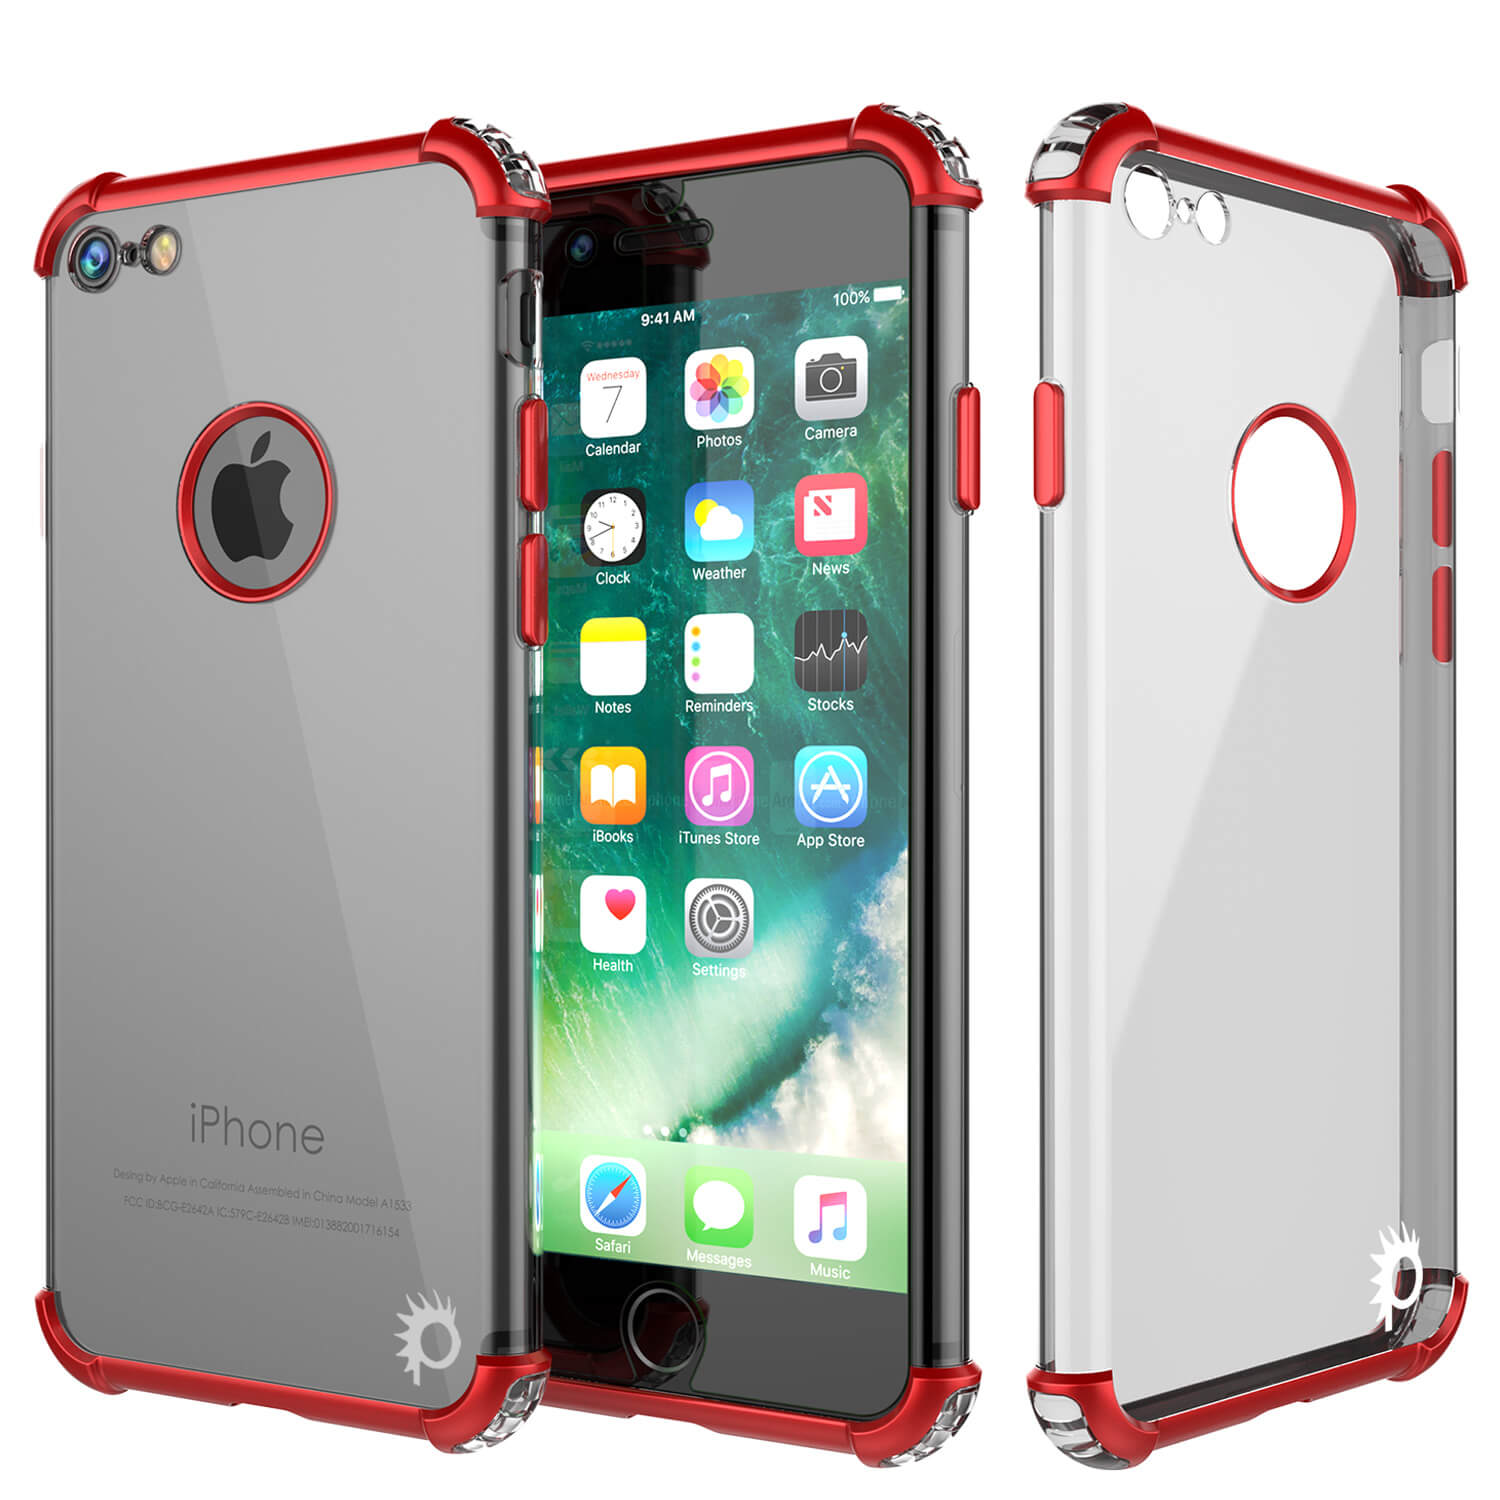 iPhone 7 Case, Punkcase [BLAZE Red SERIES] Protective Cover W/ PunkShield Screen Protector